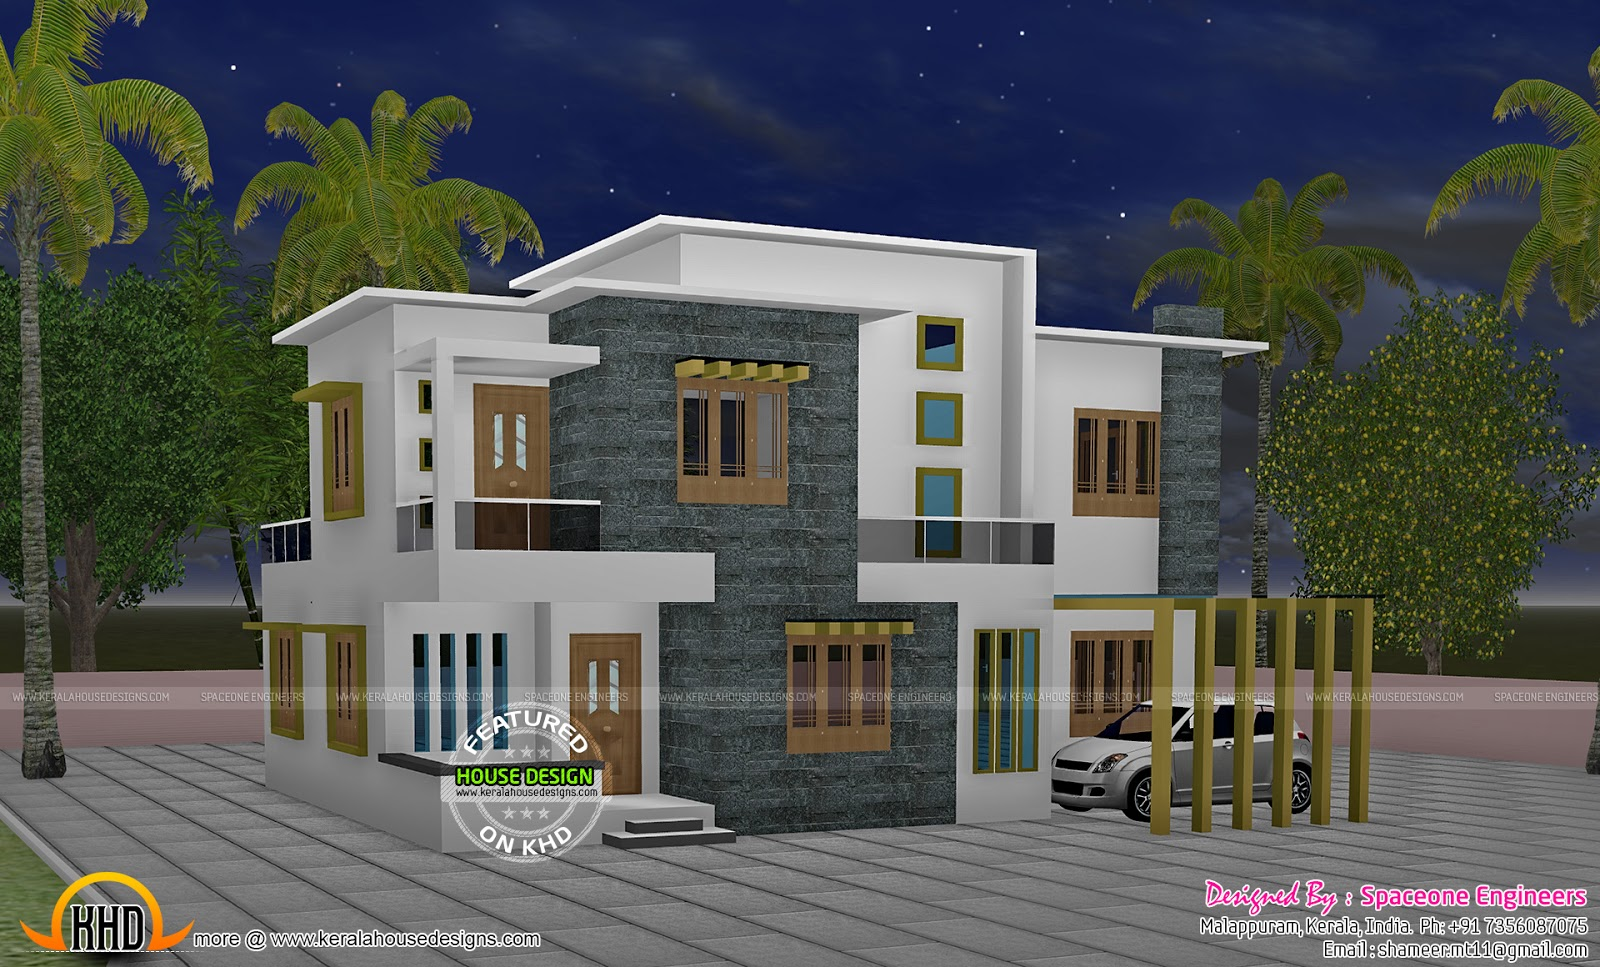 4 bedroom Flat roof style house - 2200 sq-ft - Kerala home ...